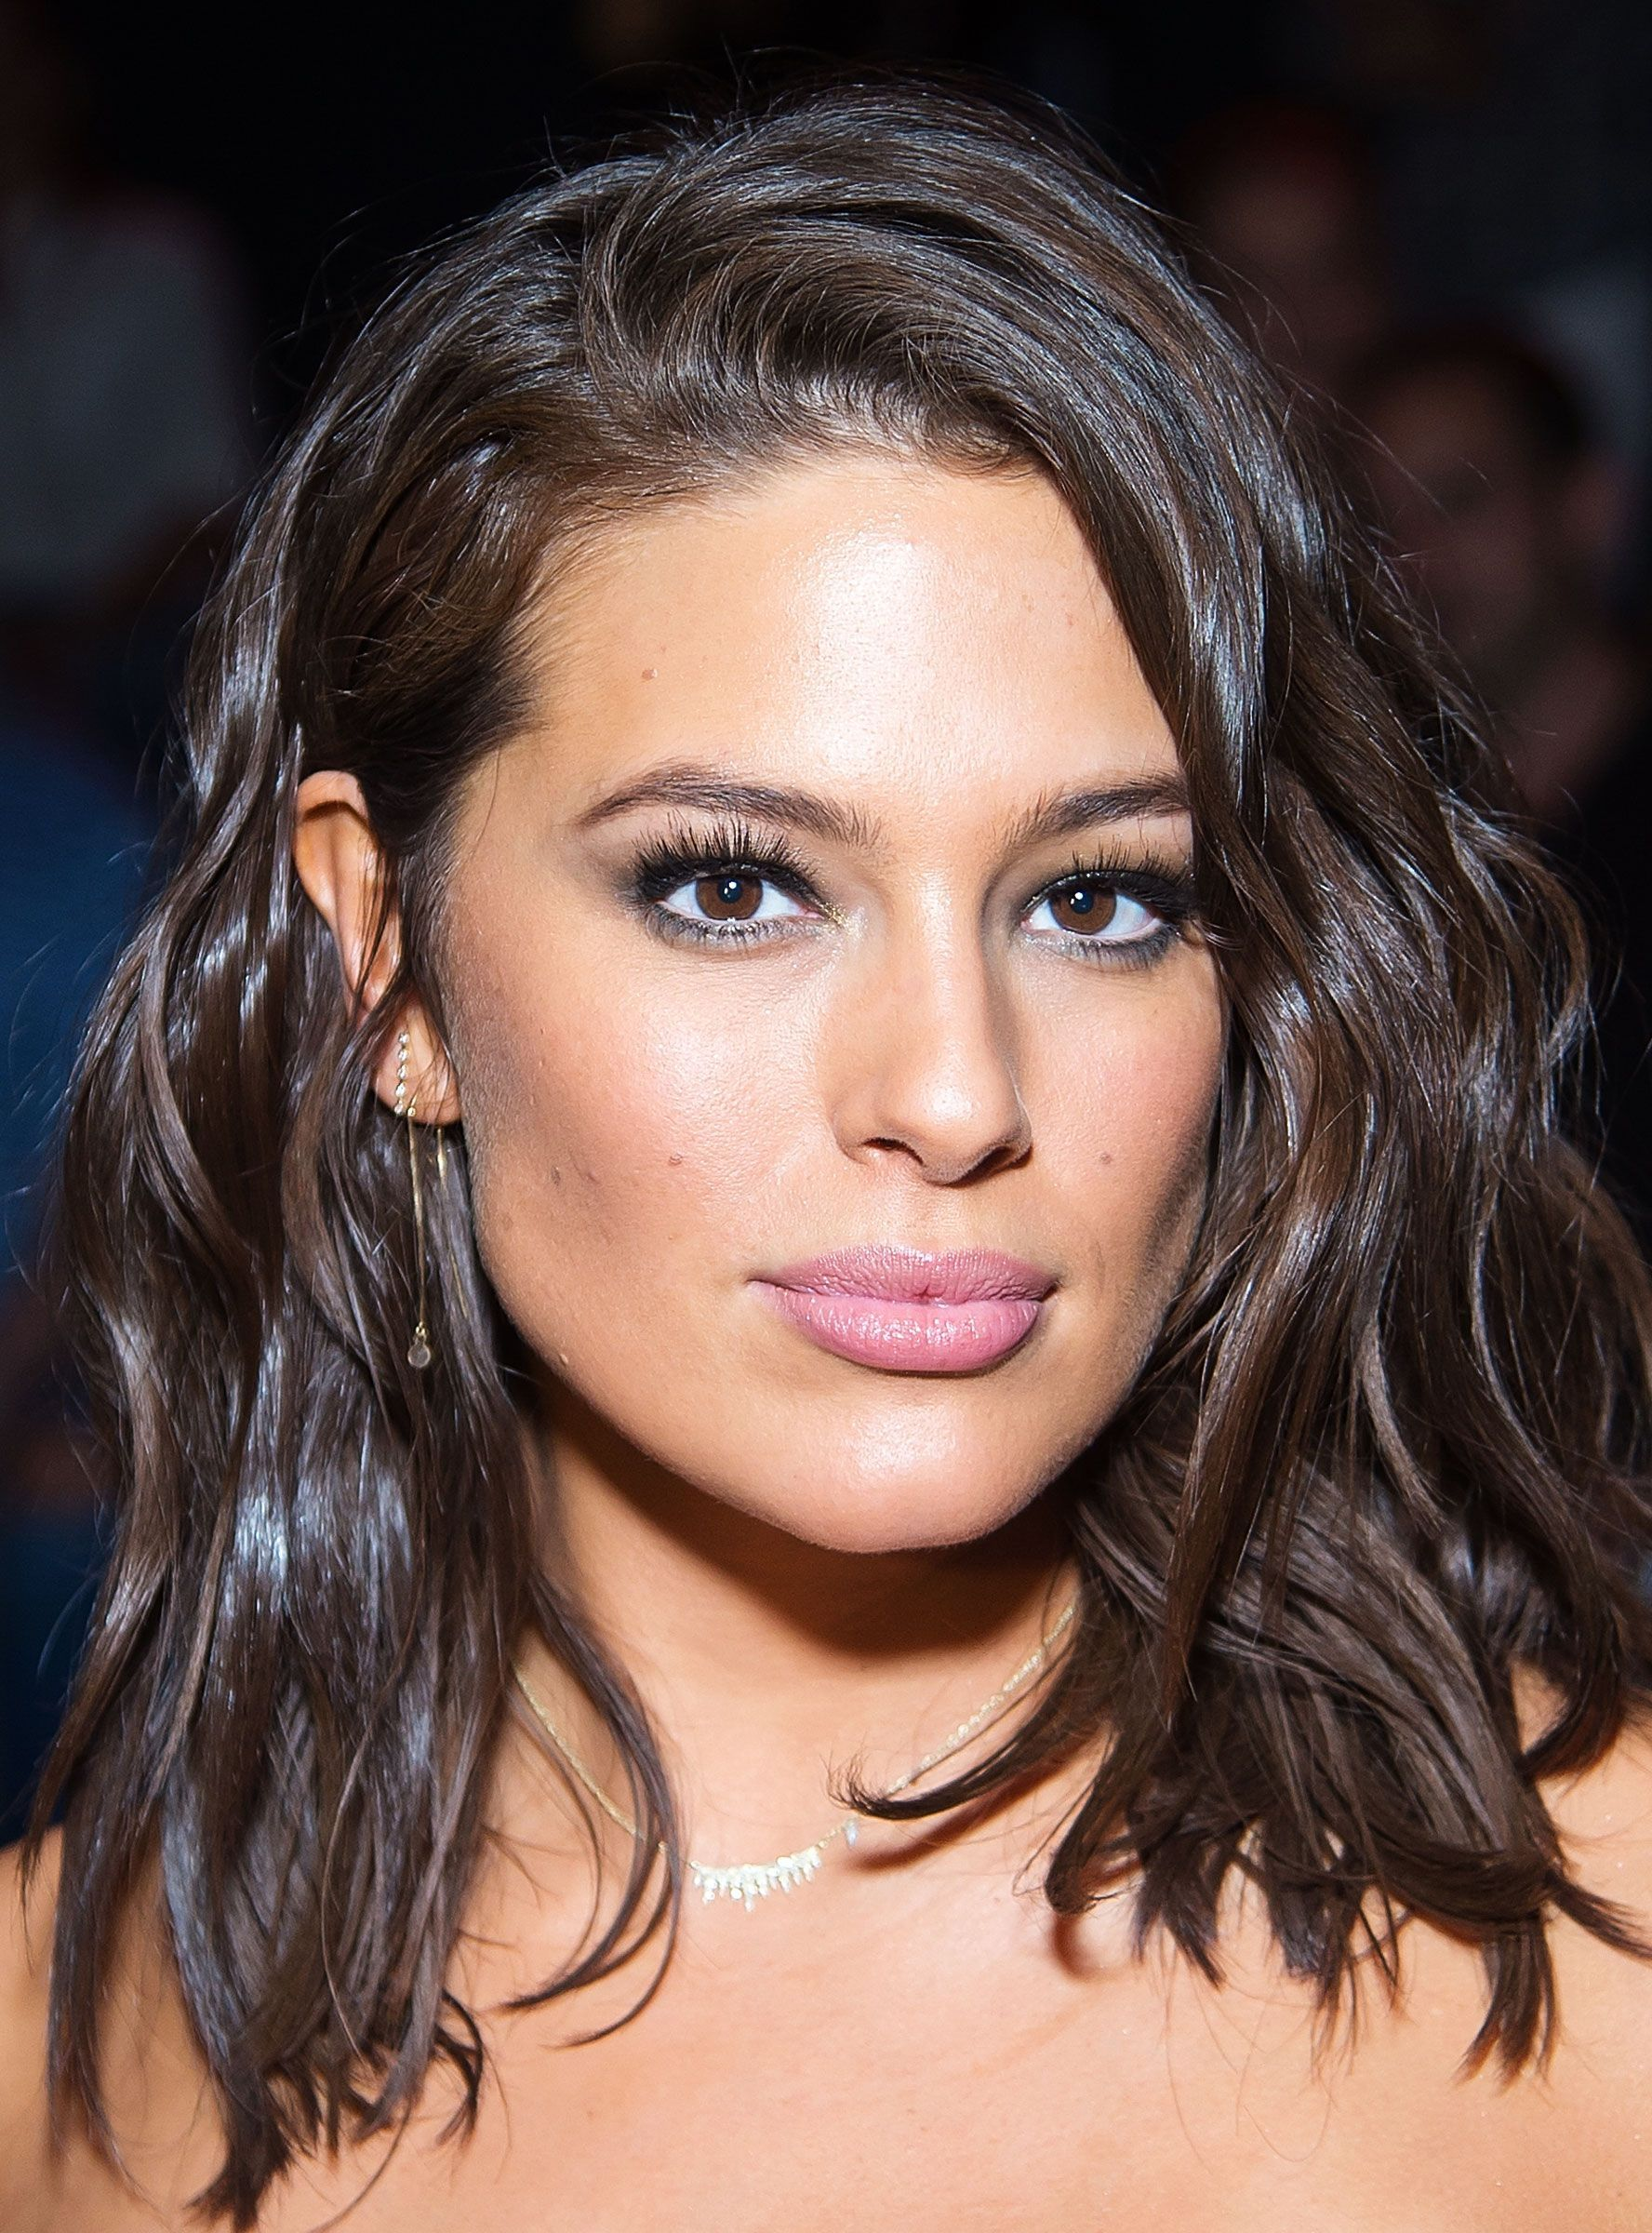 ashley graham - photo #5